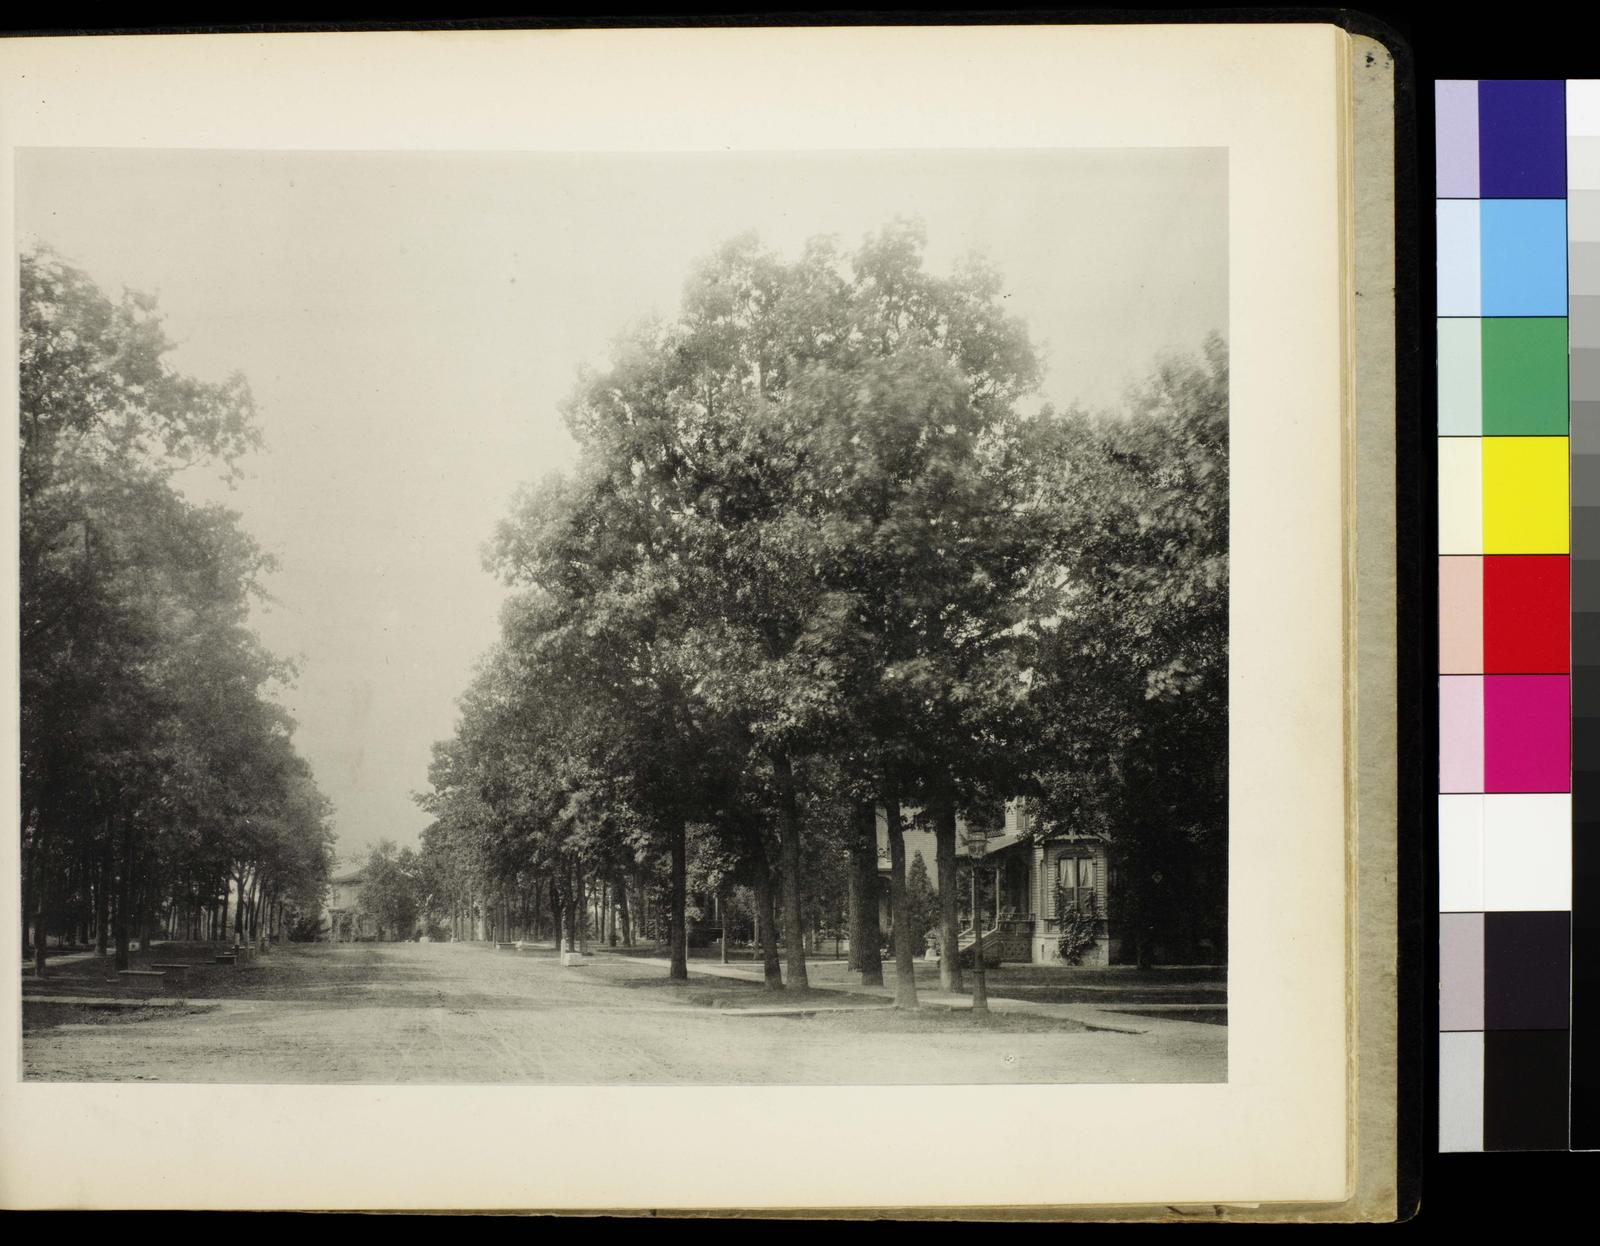 Photographic views of picturesque Evanston, state of Illinois. Davis Street, west from Ridge Avenue. Versos